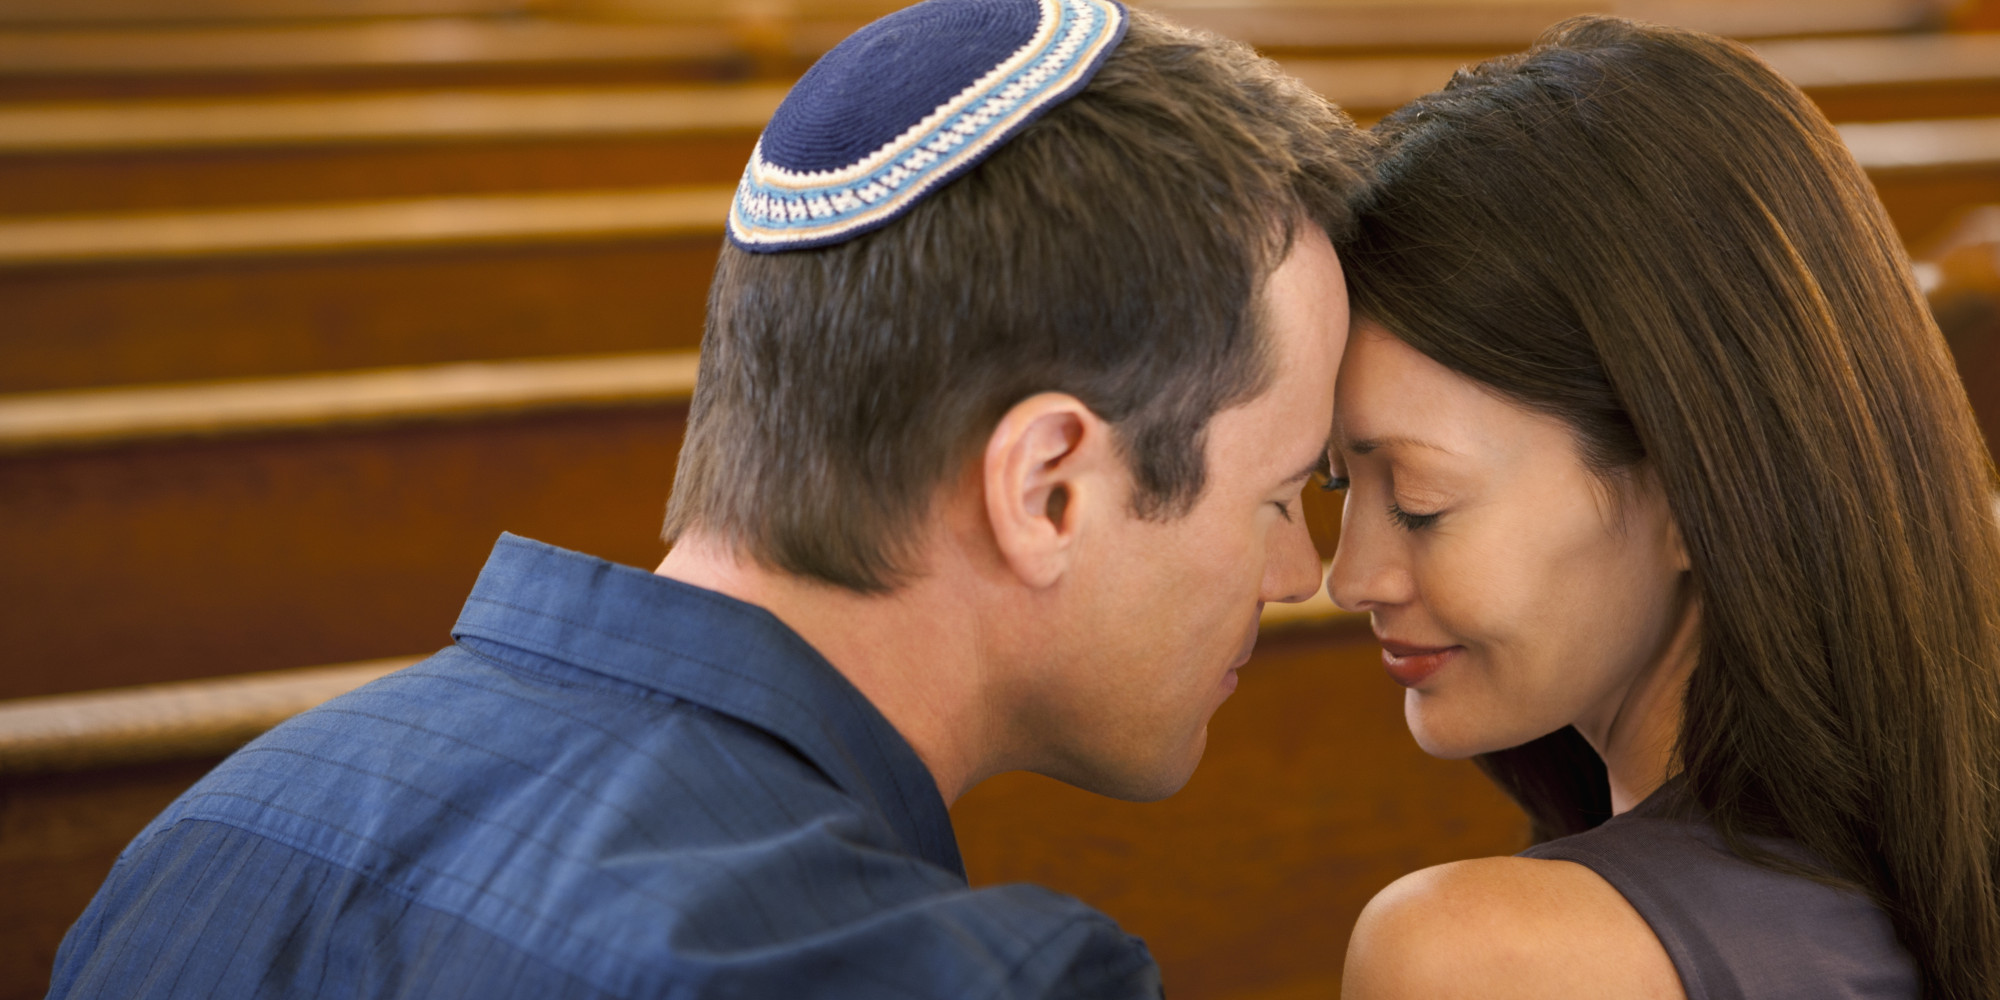 Israeli men and relationships